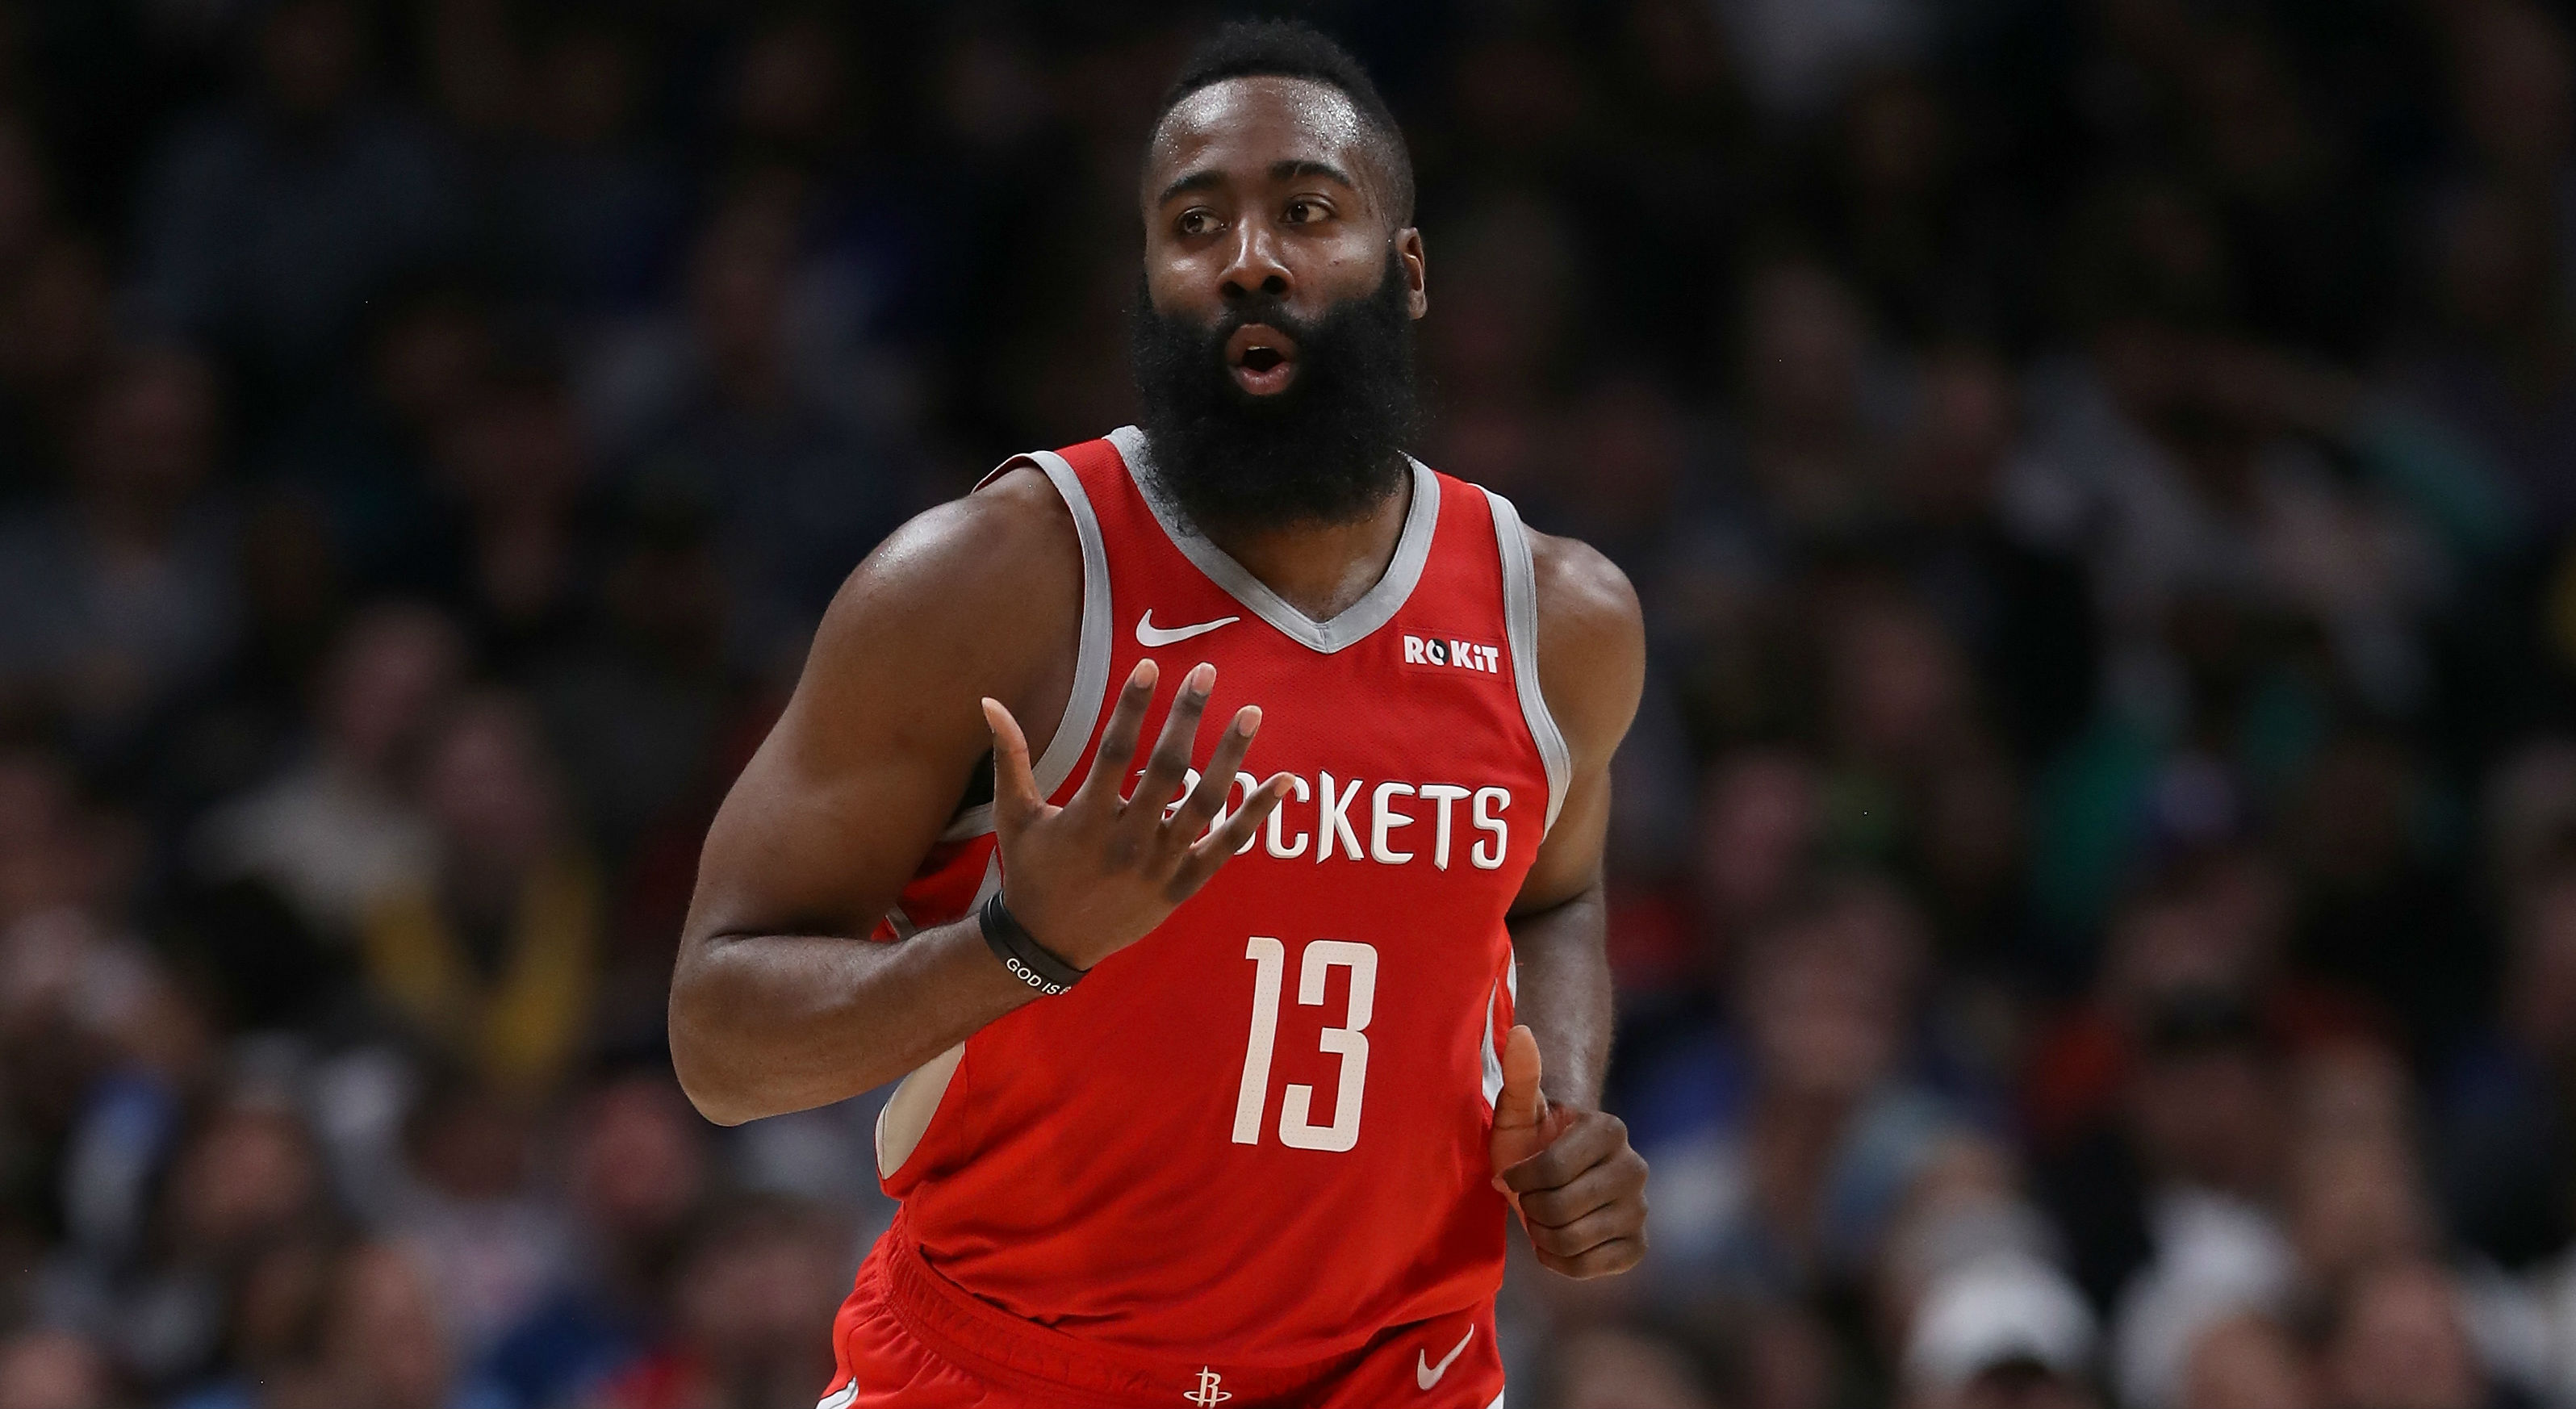 Harden: Focus on 'greatness of what I'm doing,' not foul calls